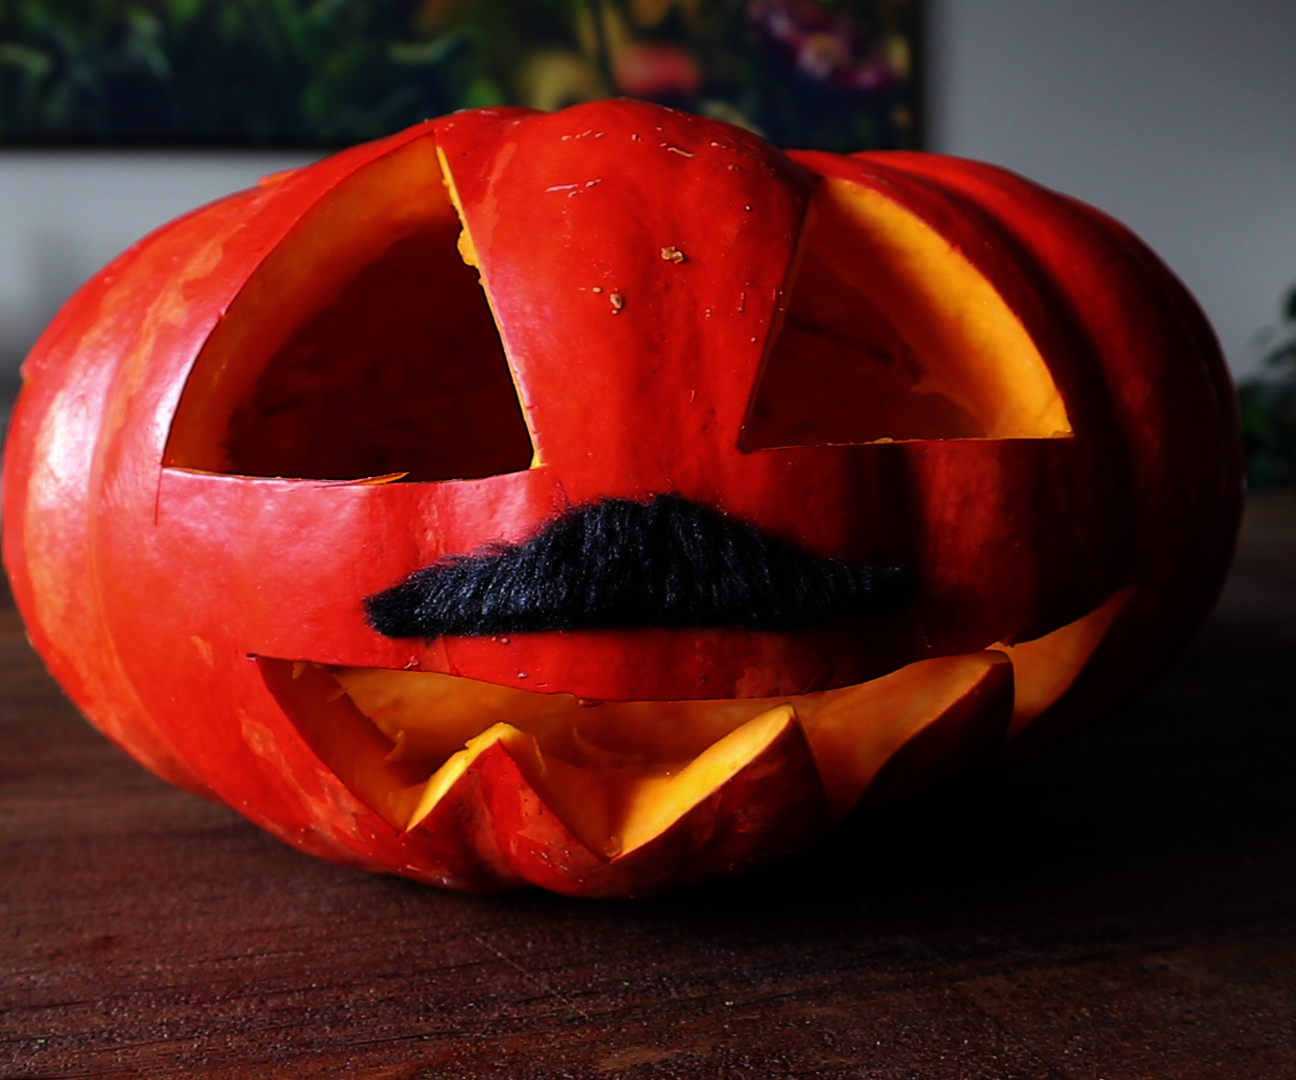 Jacques Pierre - the Internet Controlled Hacking Pumpkin